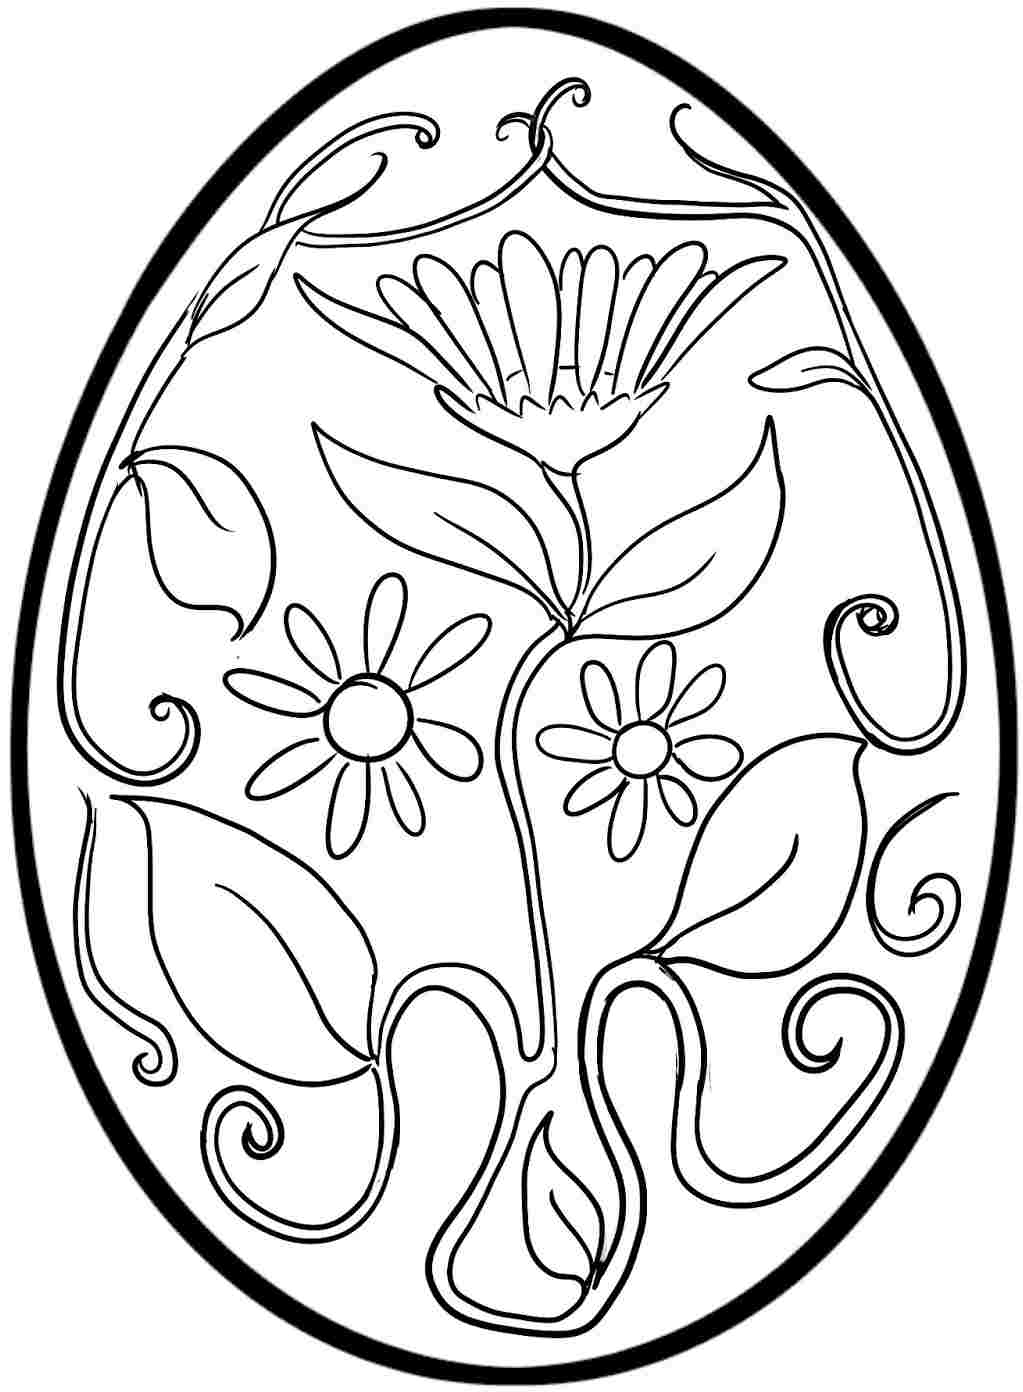 1023x1392 Easter Egg Coloring Pages Online Cute Free Printable Easter Egg